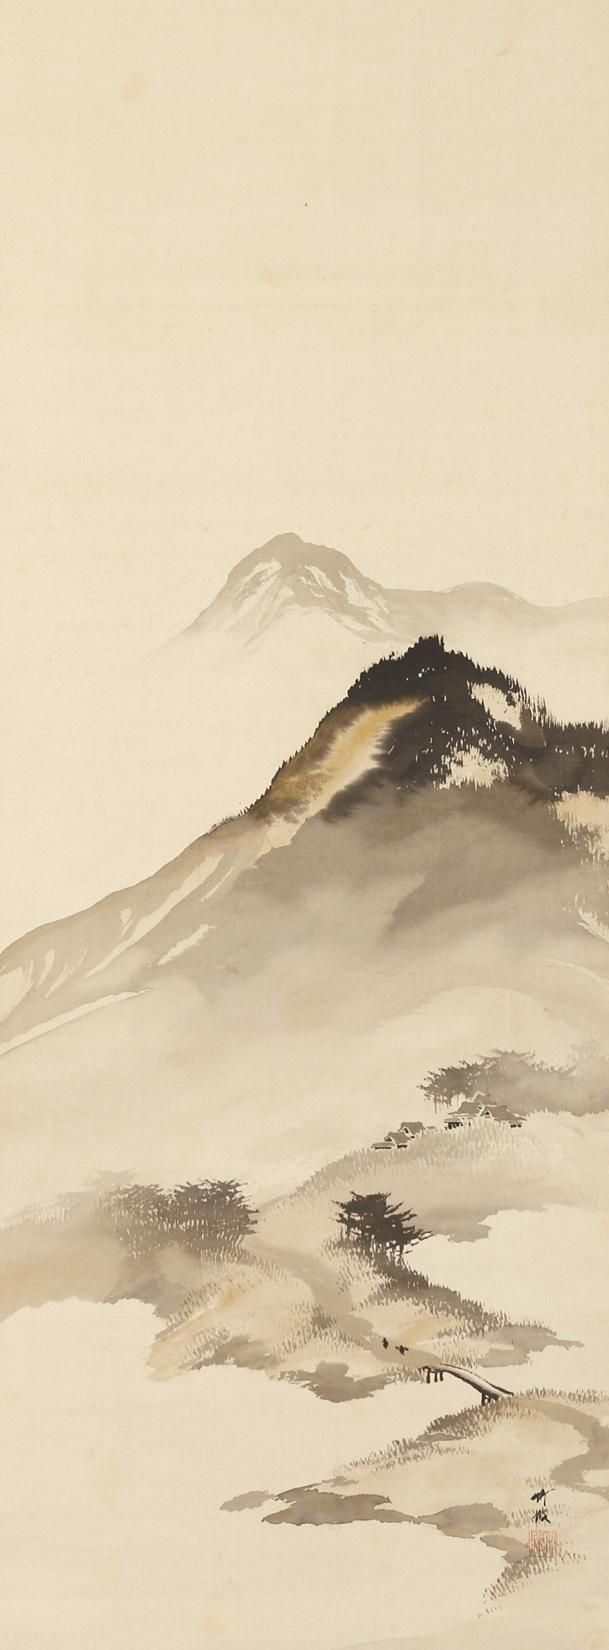 Mountain Landscape with Bridge: by Odake Chikuha, (1878-1936) Japanese modern movement (1912-1998)